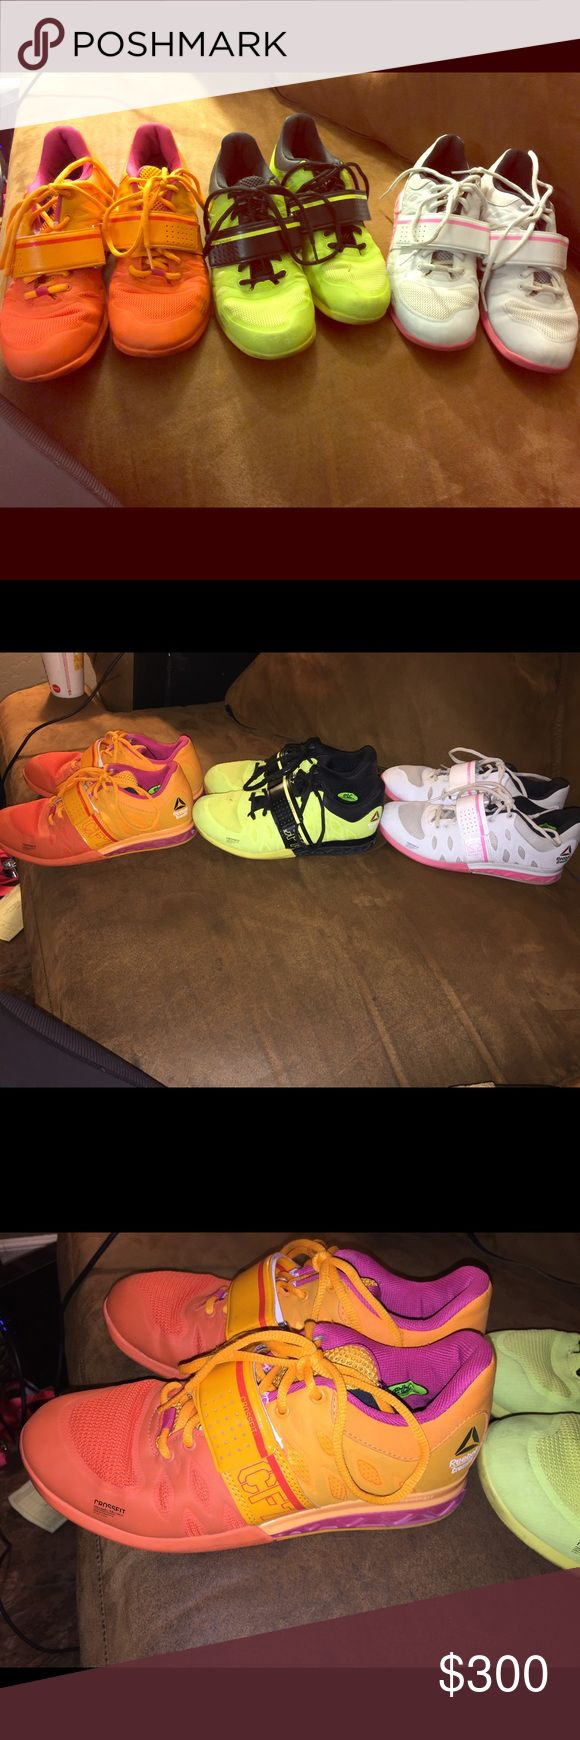 Reebok Crossfit Lifters 2.0 Reebok weightlifting shoes. They are in very good condition. The orange and yellow ones have been worn maybe 5 times and the pink ones around 10 times.  Size: Women's 6            I'd sell them for $100 each or all for $250 Reebok Shoes